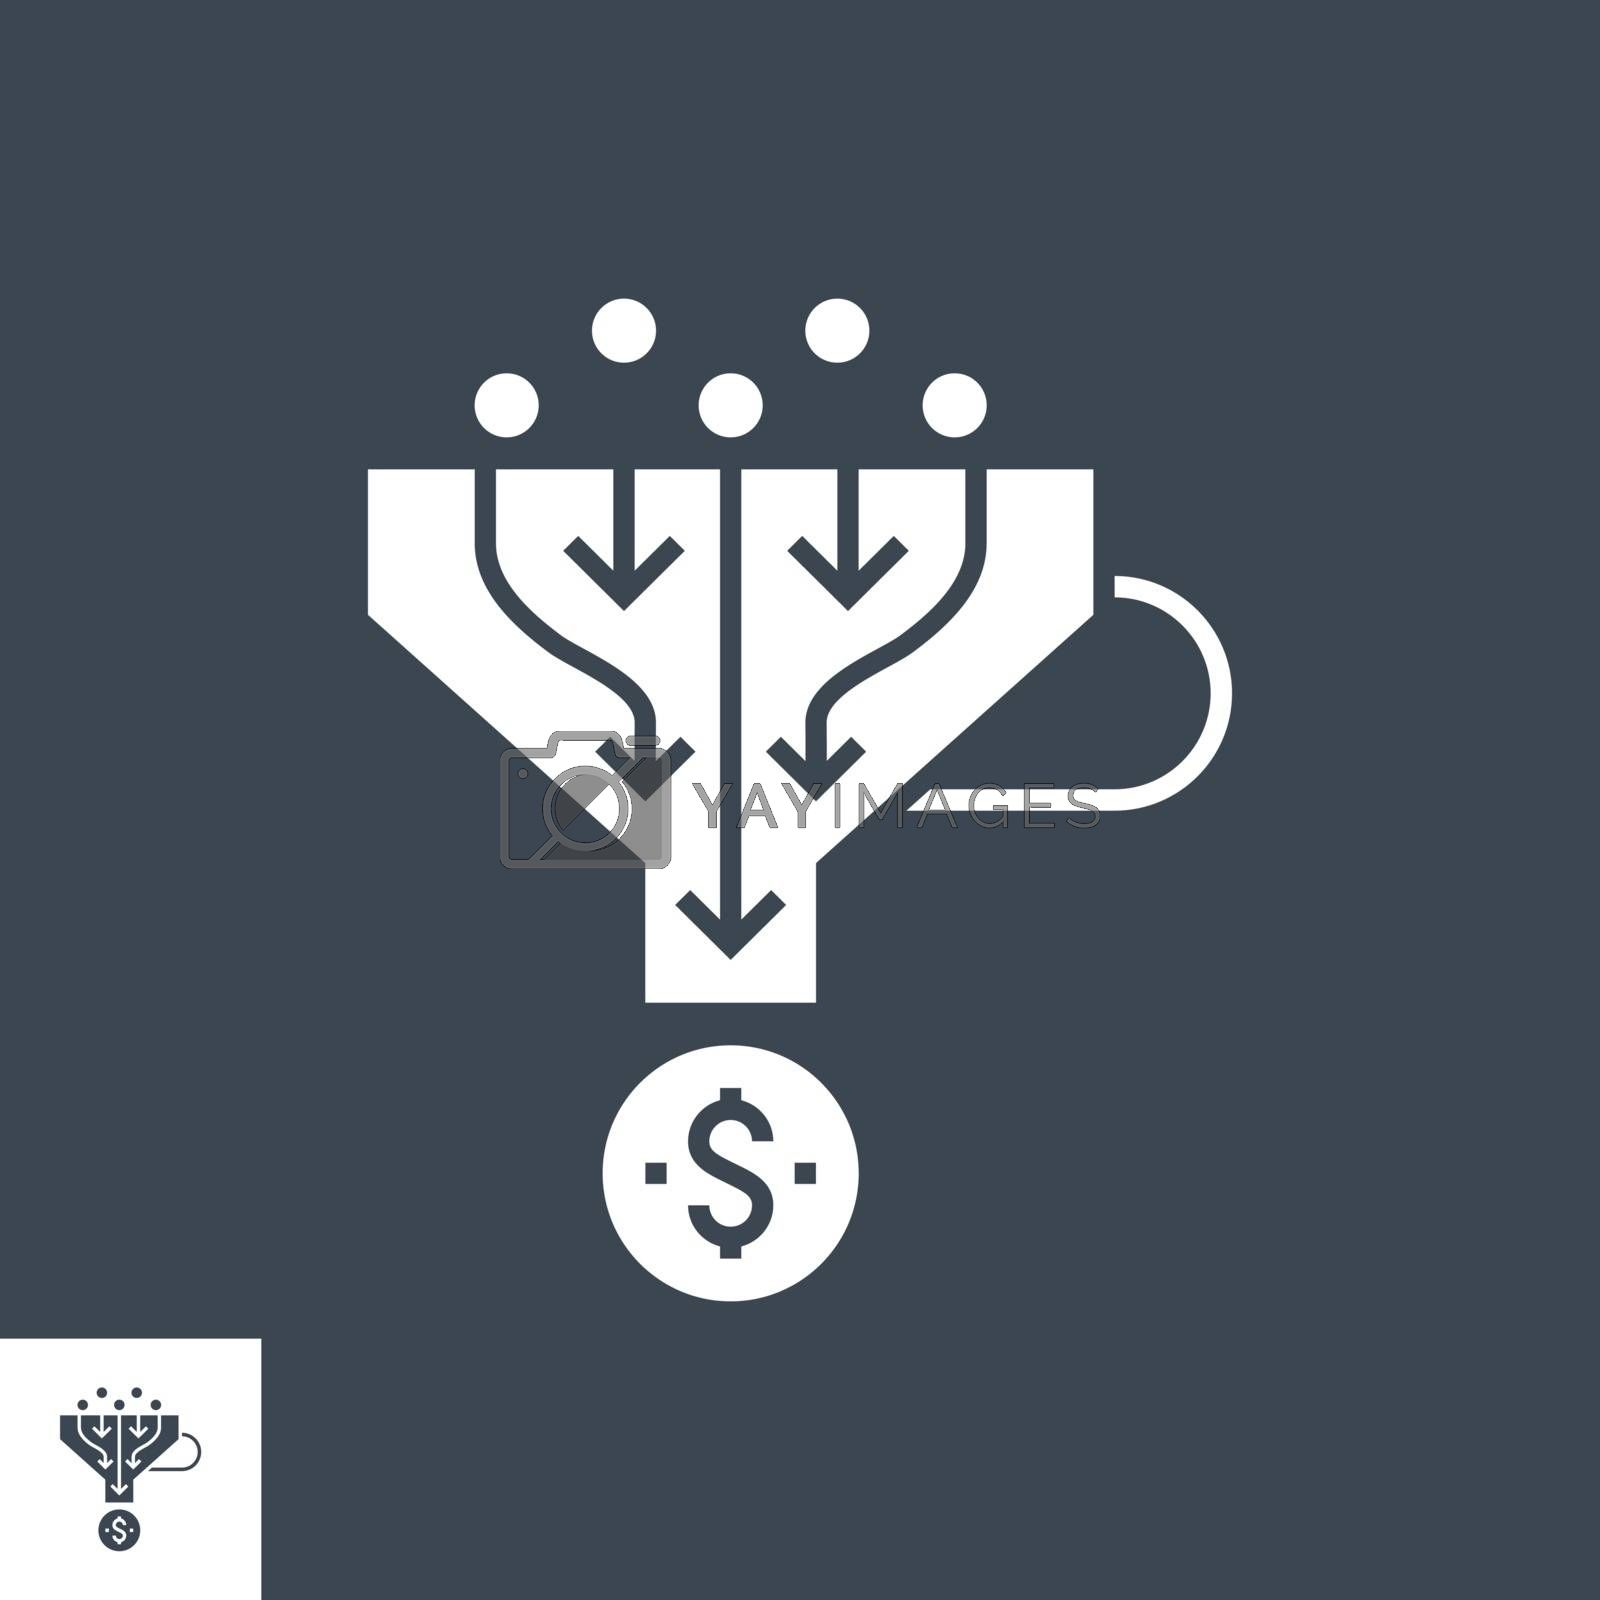 Sales Funnel Related Vector Glyph Icon. Isolated on Black Background. Vector Illustration.